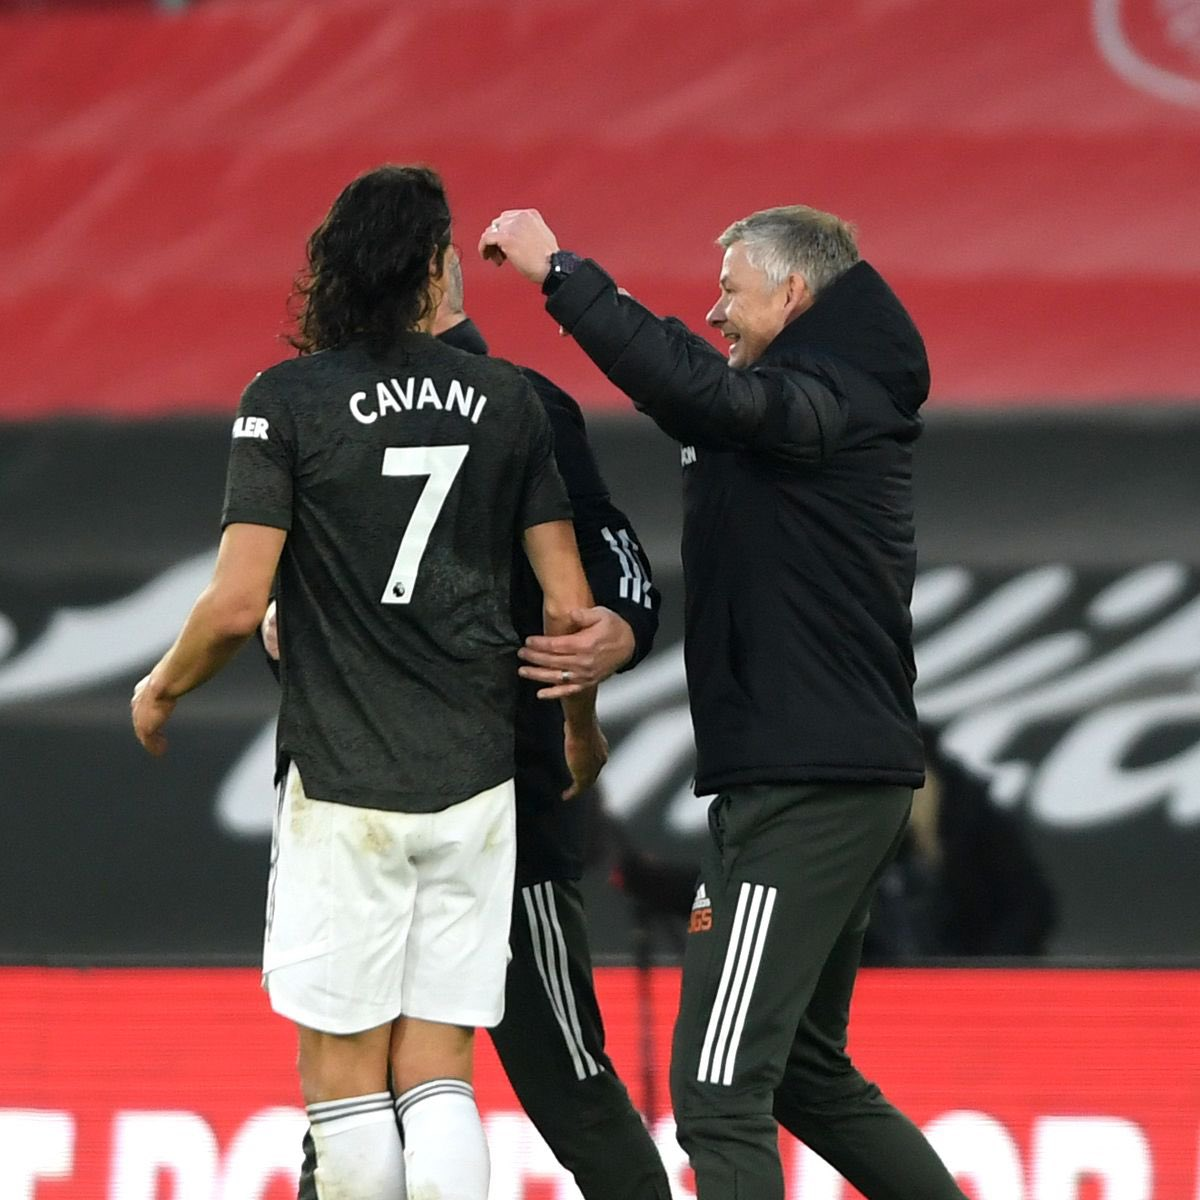 """Solskjaer: """"We're not here for a quick fix, we have players who have a long-term role to play. Even if it's, say Edinson [Cavani] coming in at the age of 33, he still has a part-long term by who he is, and how he comes in and what he does to the club and to the players."""" #MUFC"""